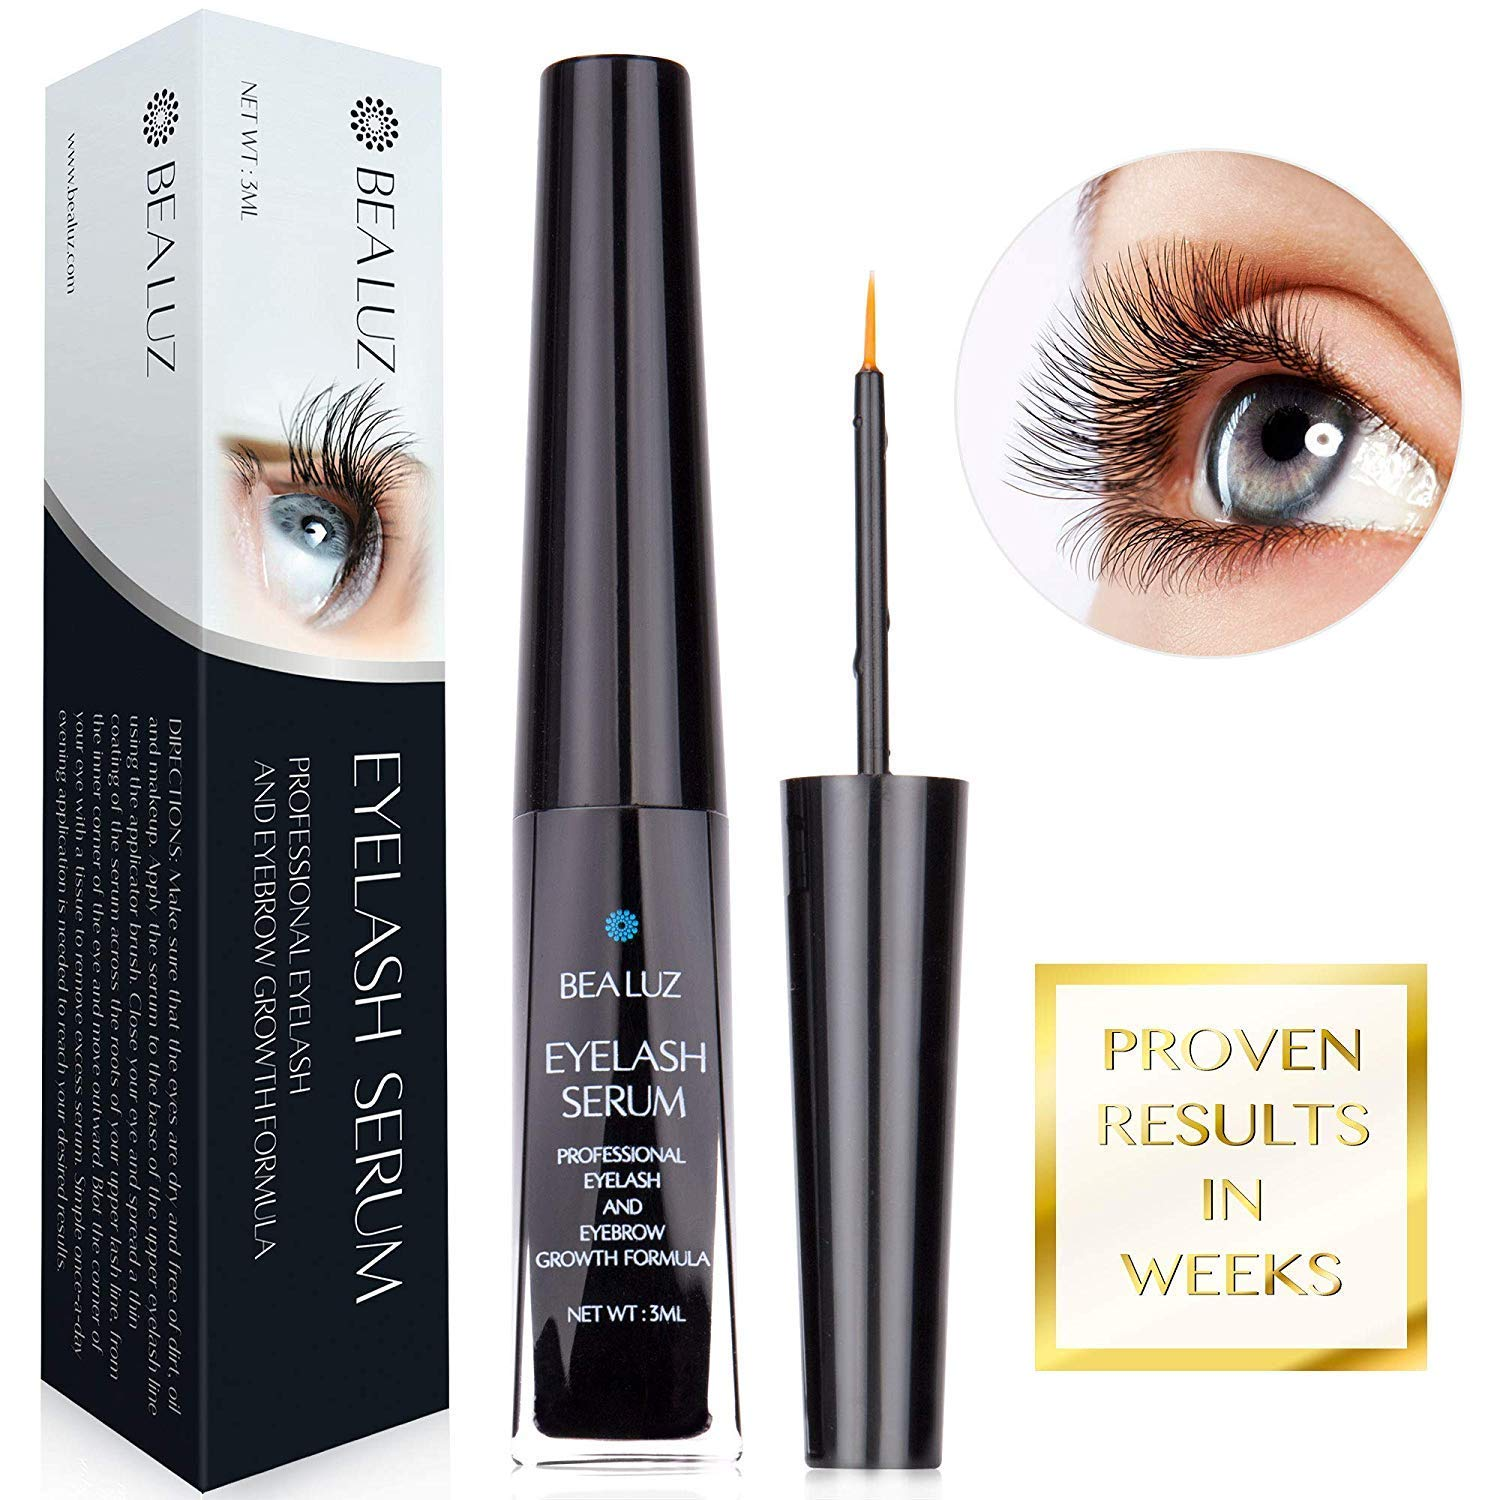 2a2b31e9899 Amazon.com: Eyelash Growth Enhancer & Brow Serum for Long, Luscious Lashes  Enhancer Primer for Longer Thicker Healthier Lash & Brow: Beauty